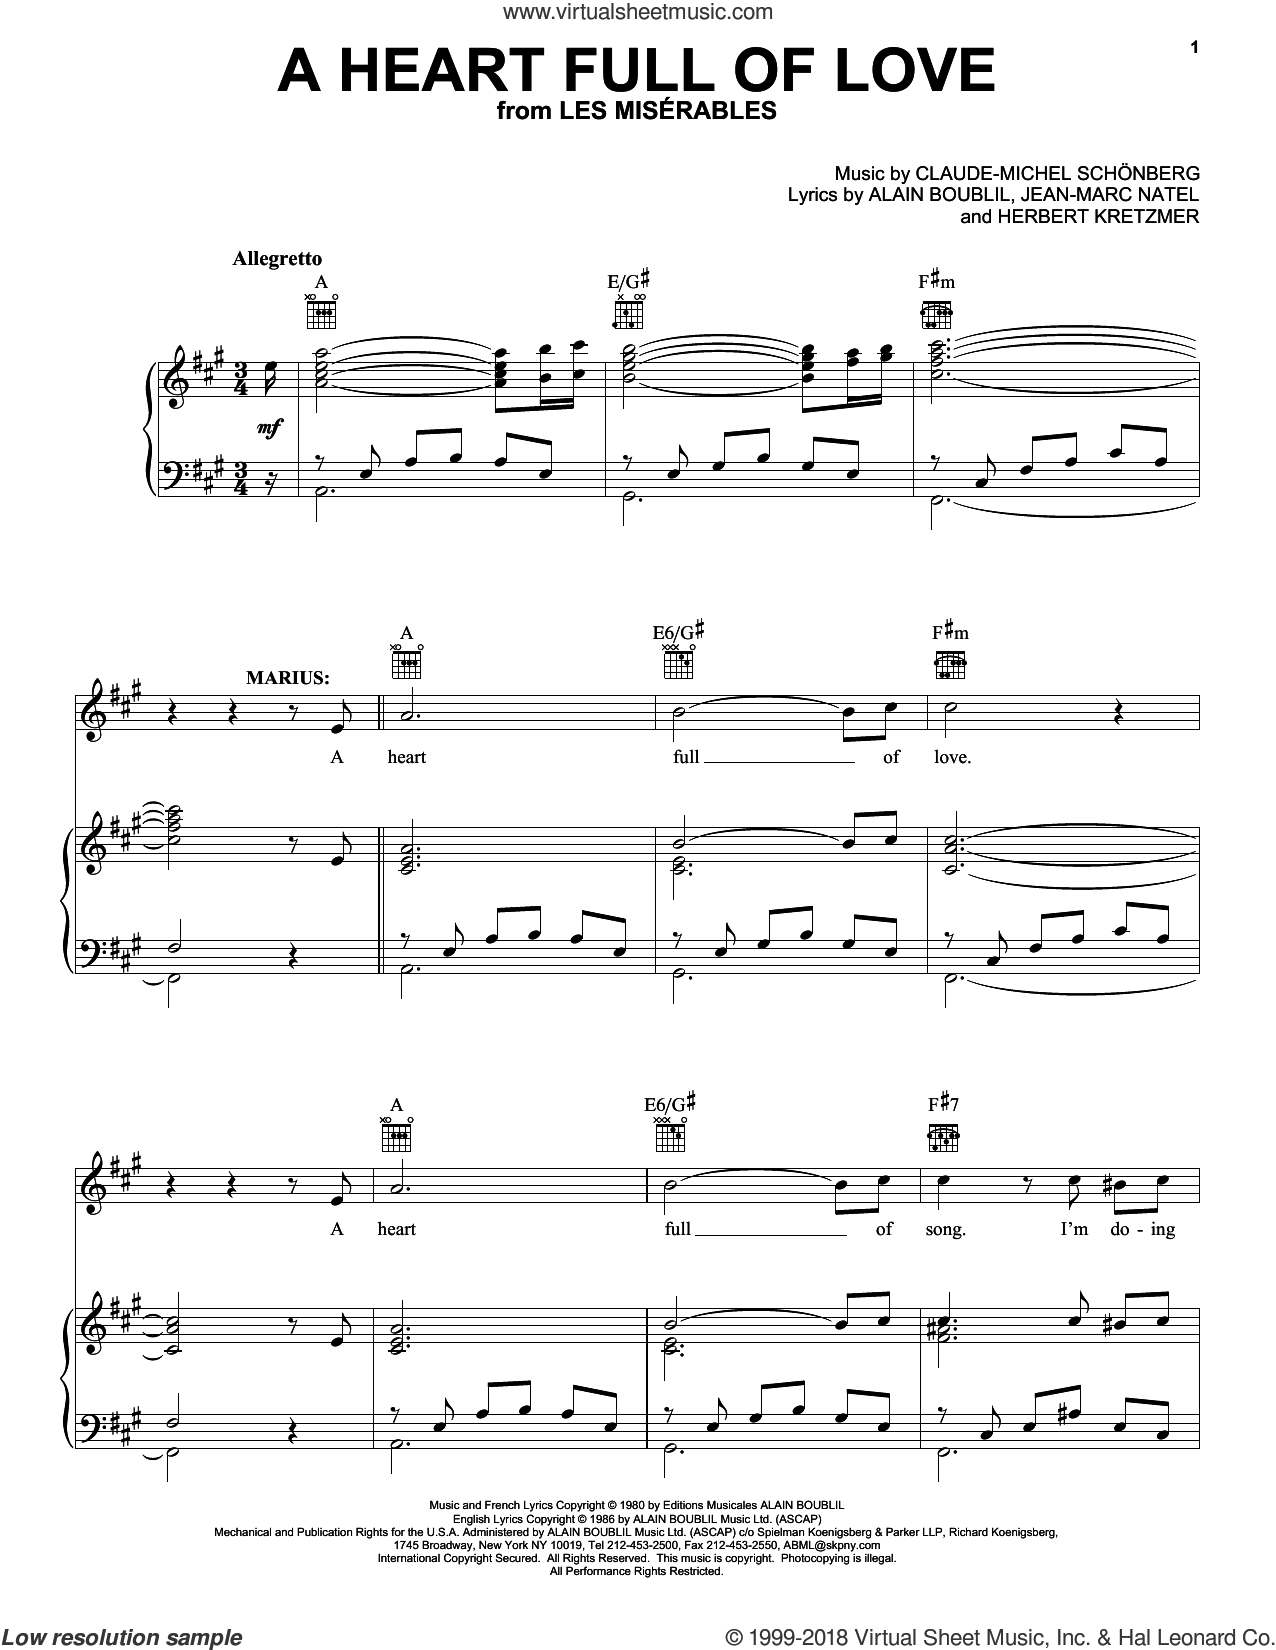 A Heart Full Of Love sheet music for voice, piano or guitar by Jean-Marc Natel